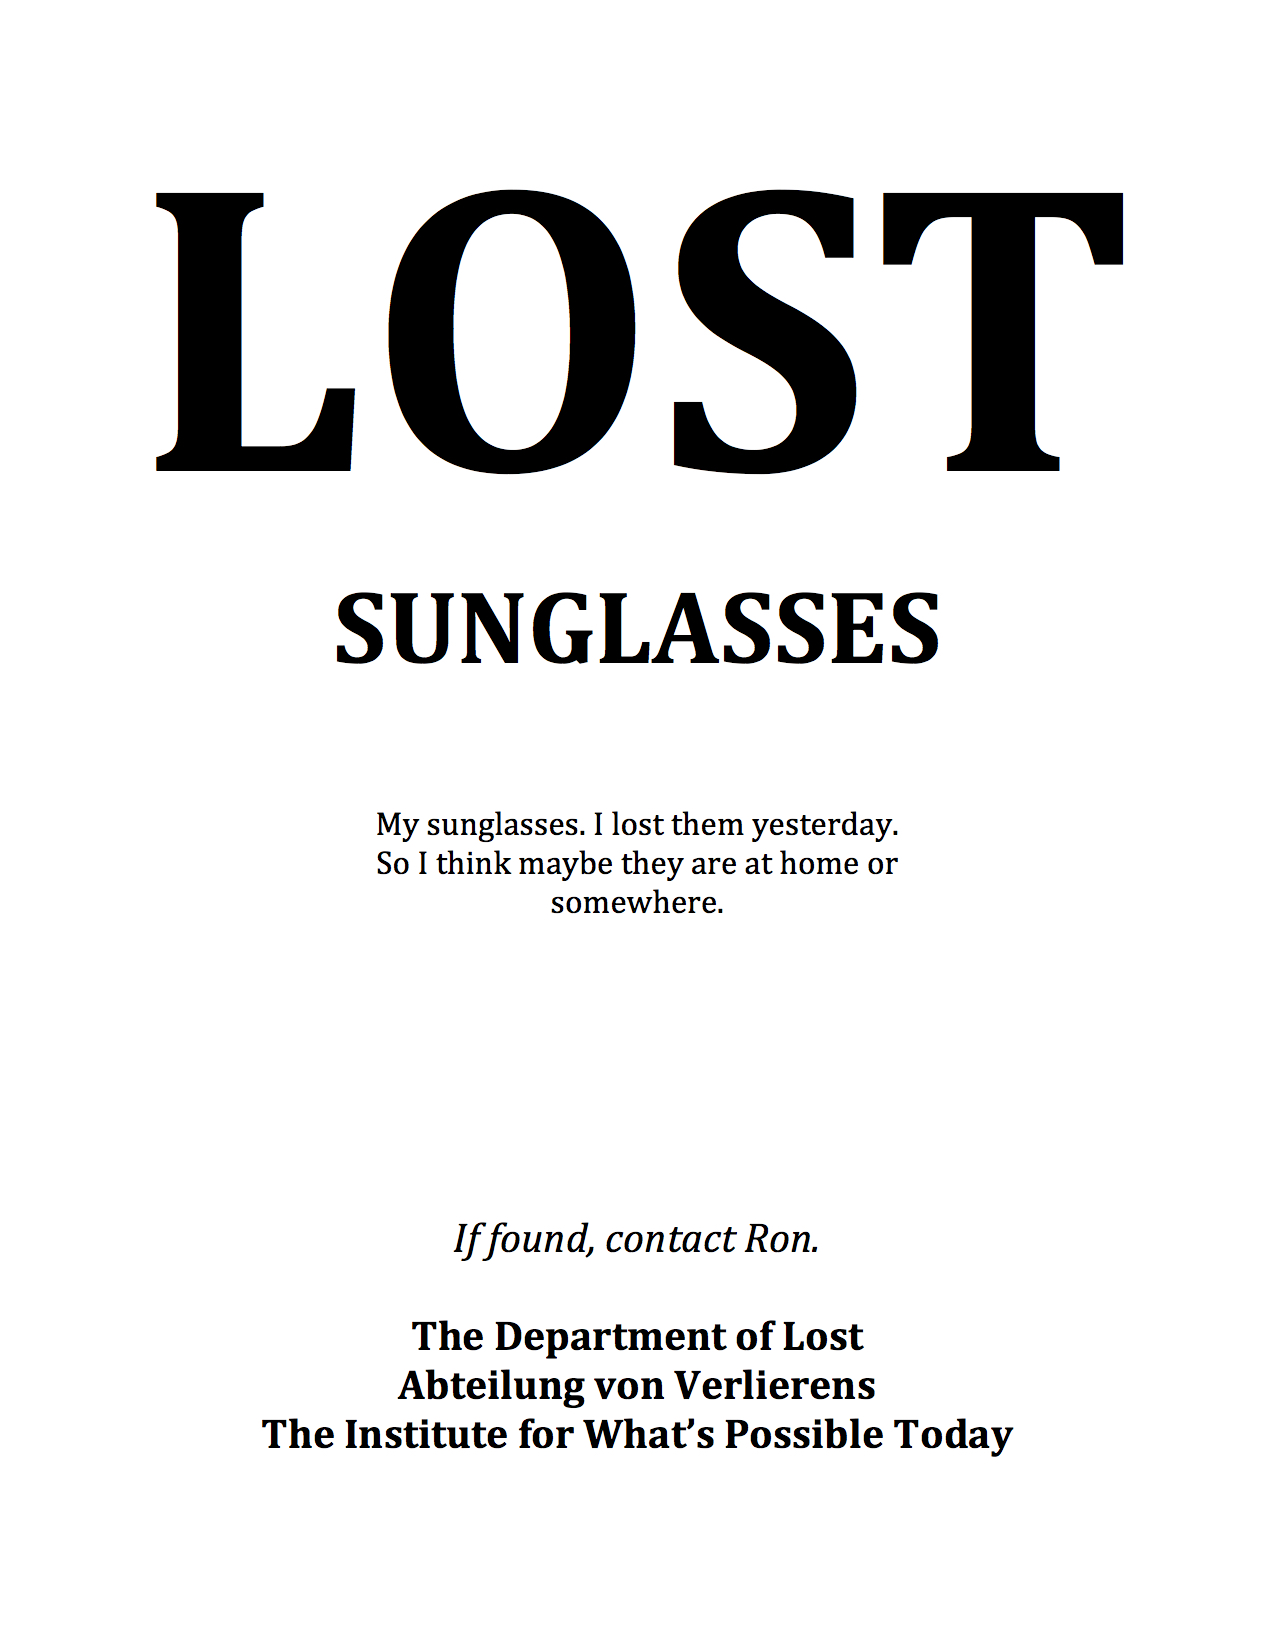 LOST- sunglasses jpeg.jpg